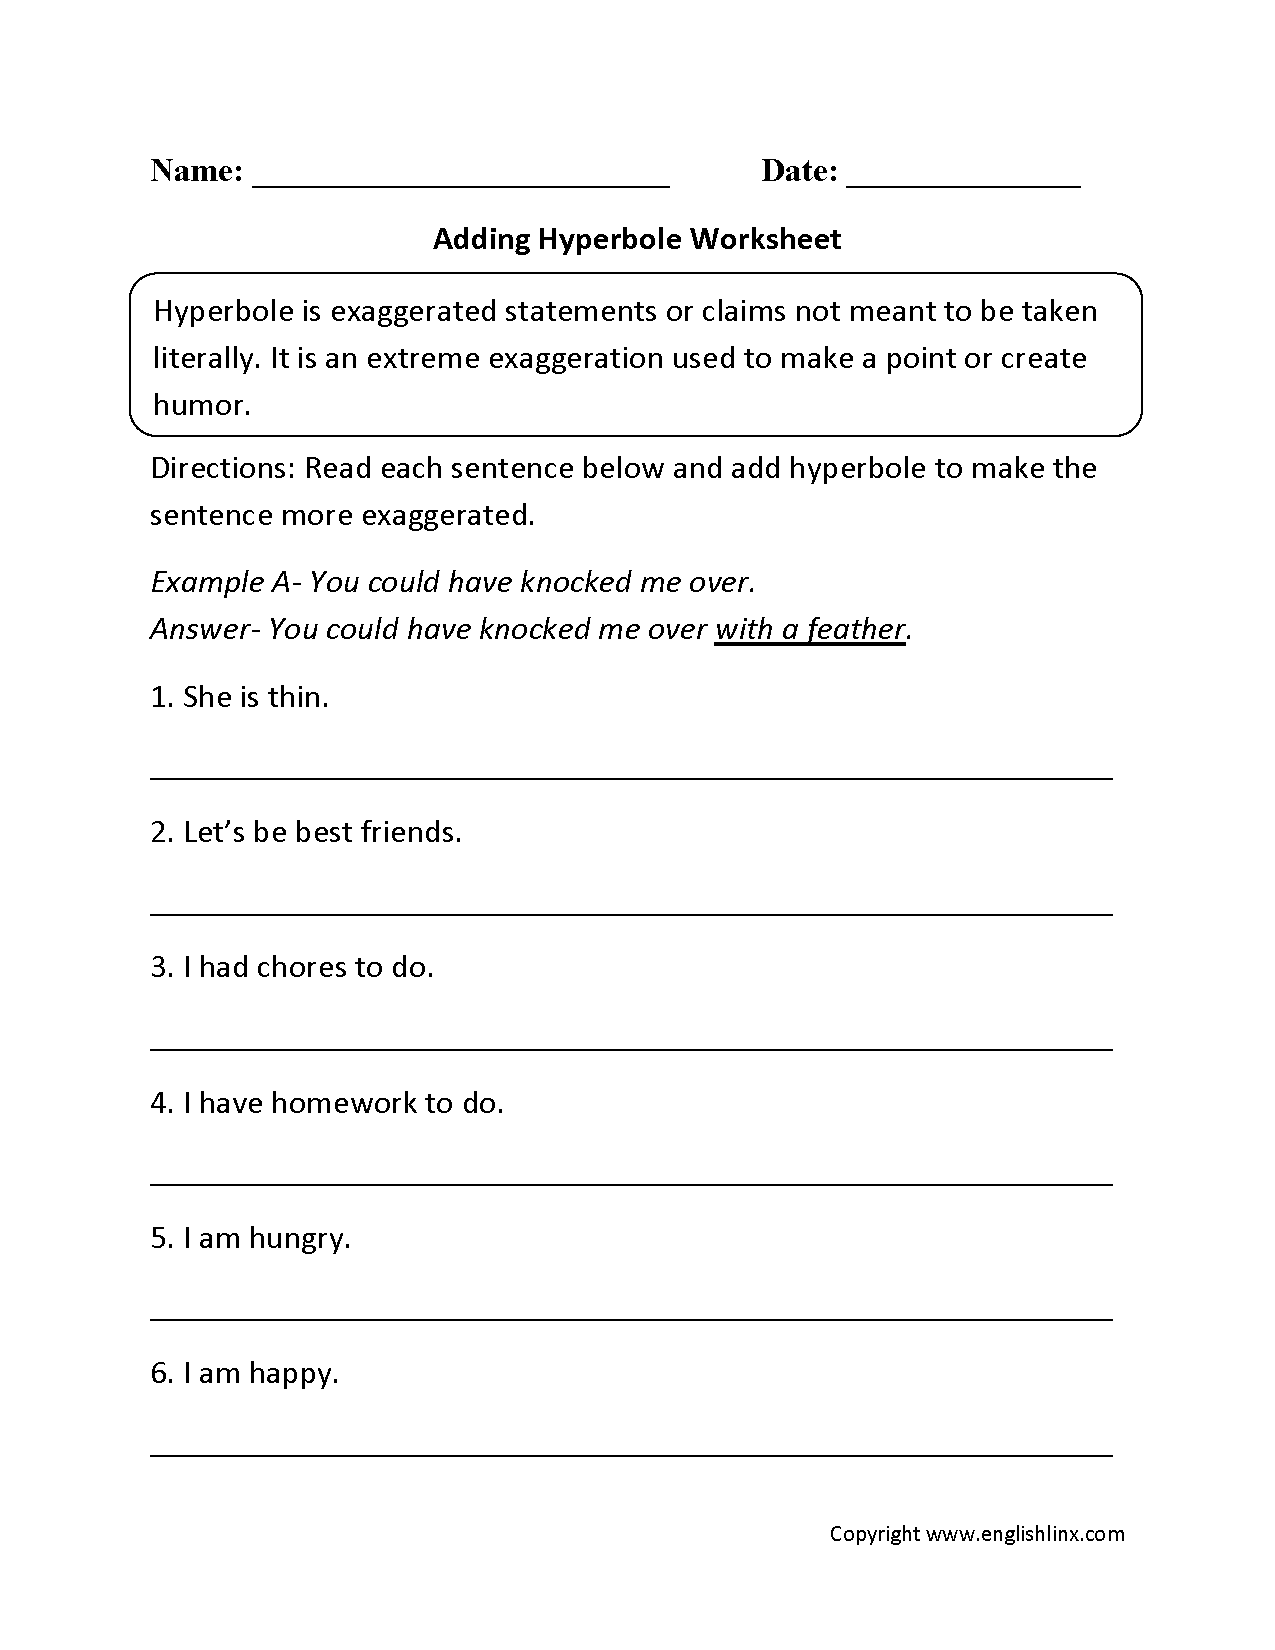 Worksheets Hyperbole Worksheets figurative language worksheets hyperbole adding worksheet